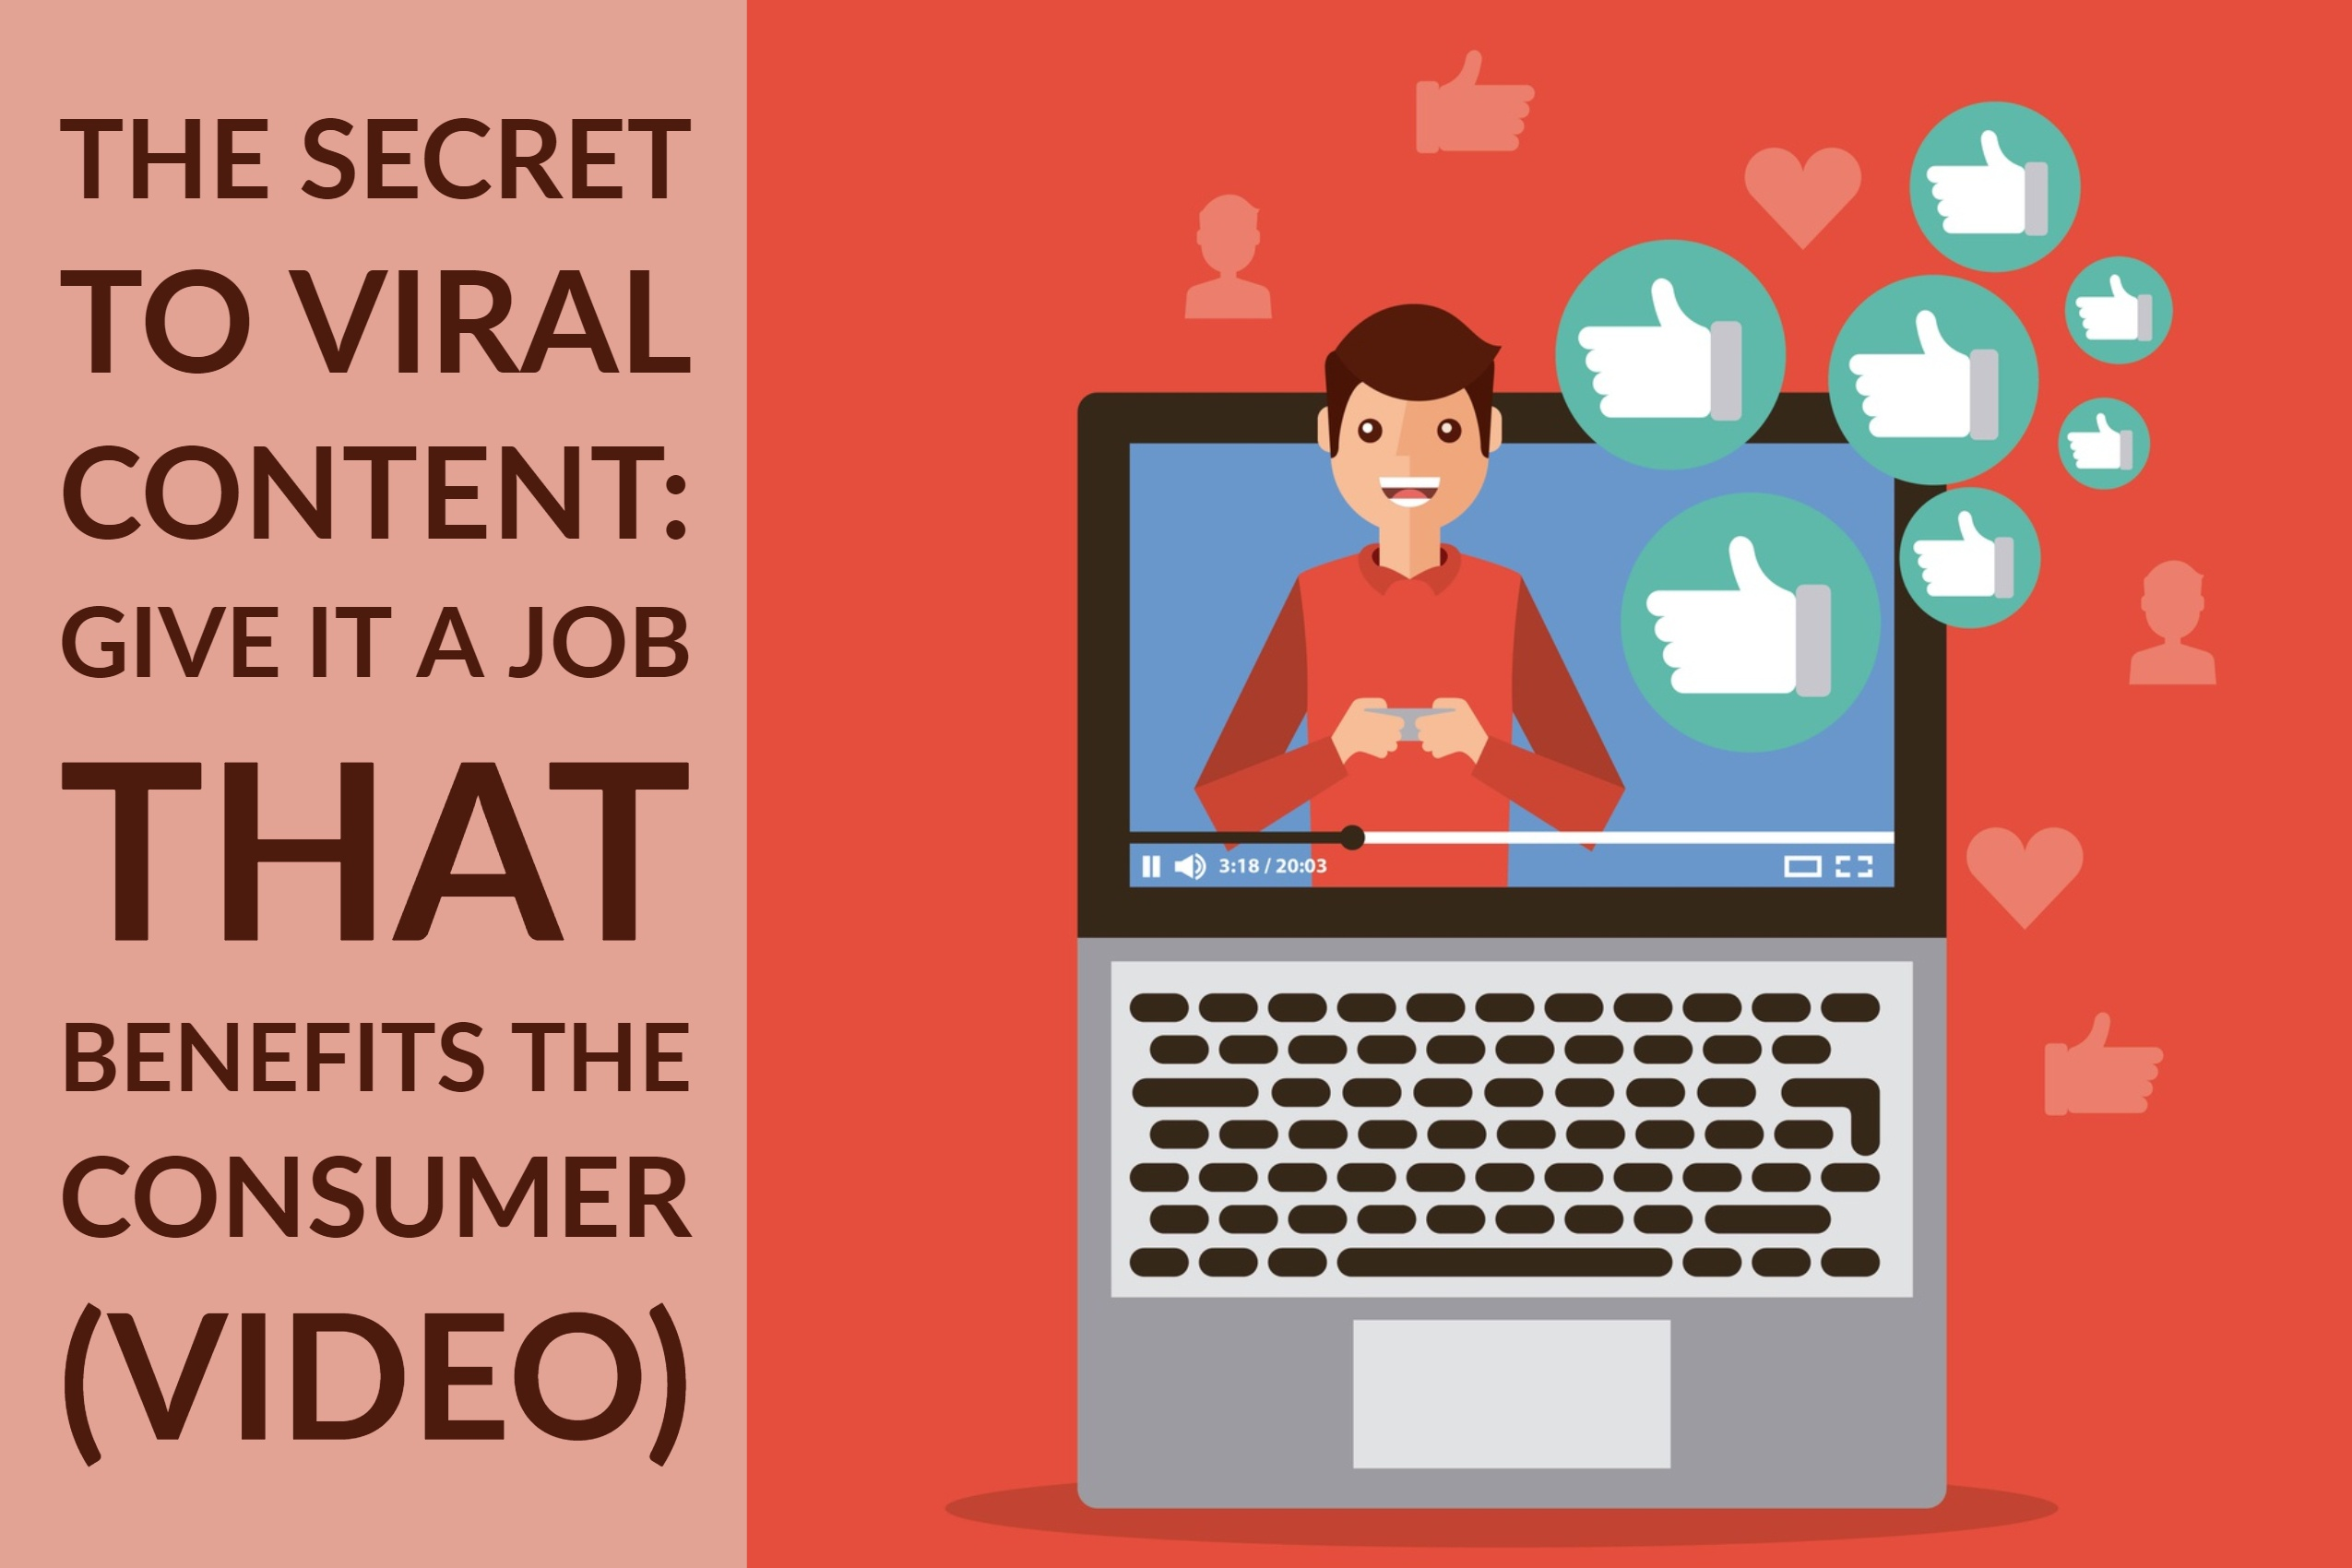 The Secret To Viral Content_ Give It A Job That Benefits The Consumer (video)